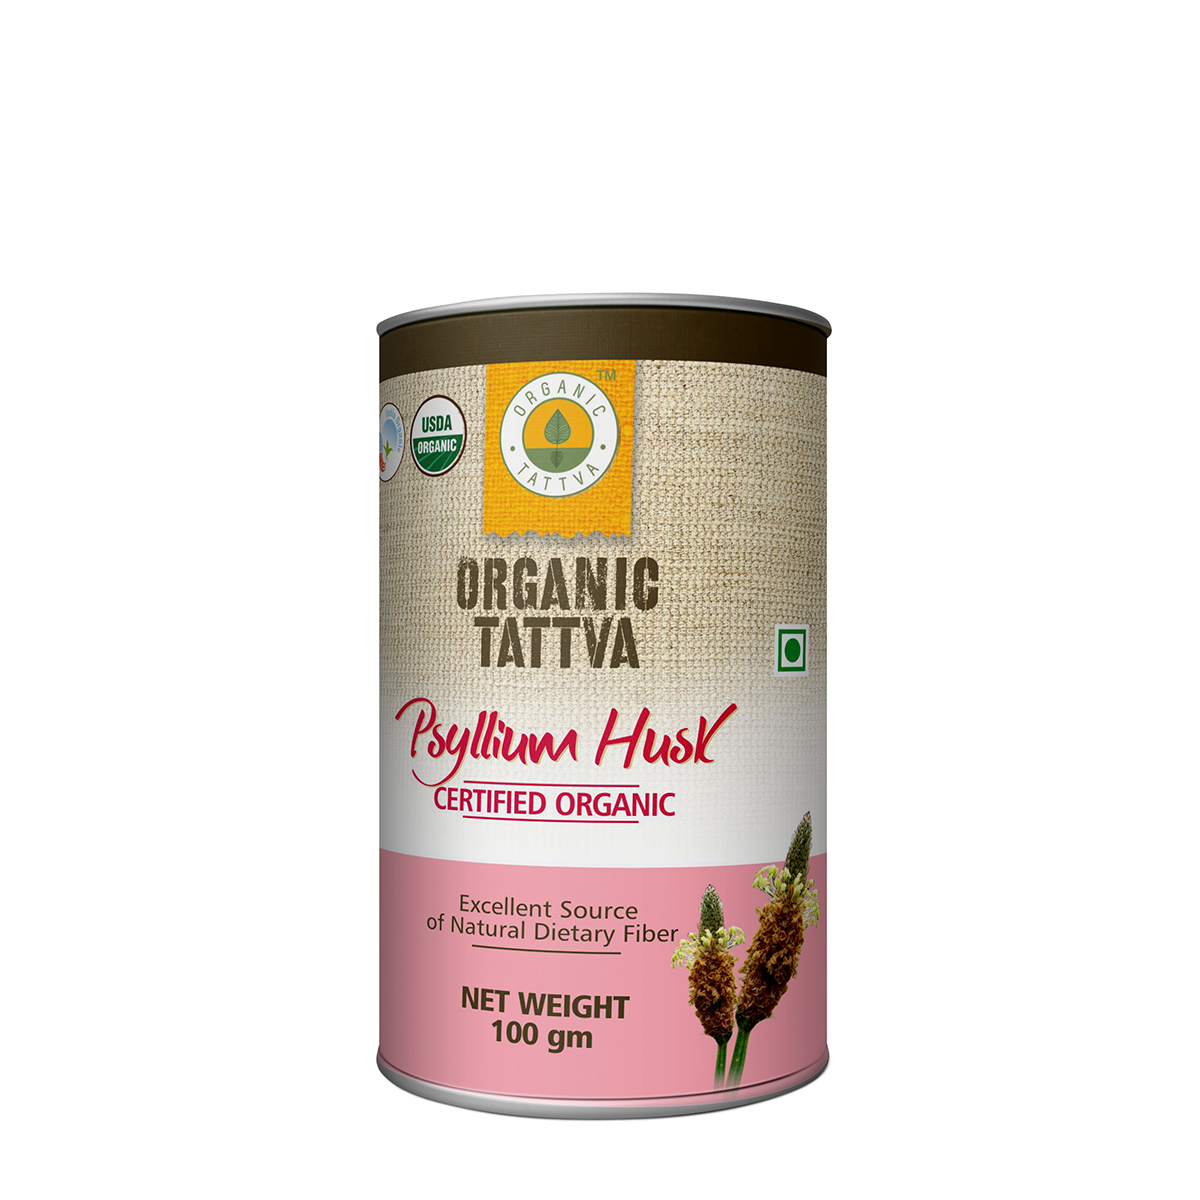 Organic Psyllium Husk Buy Organic Psyllium Husk At Best Price In